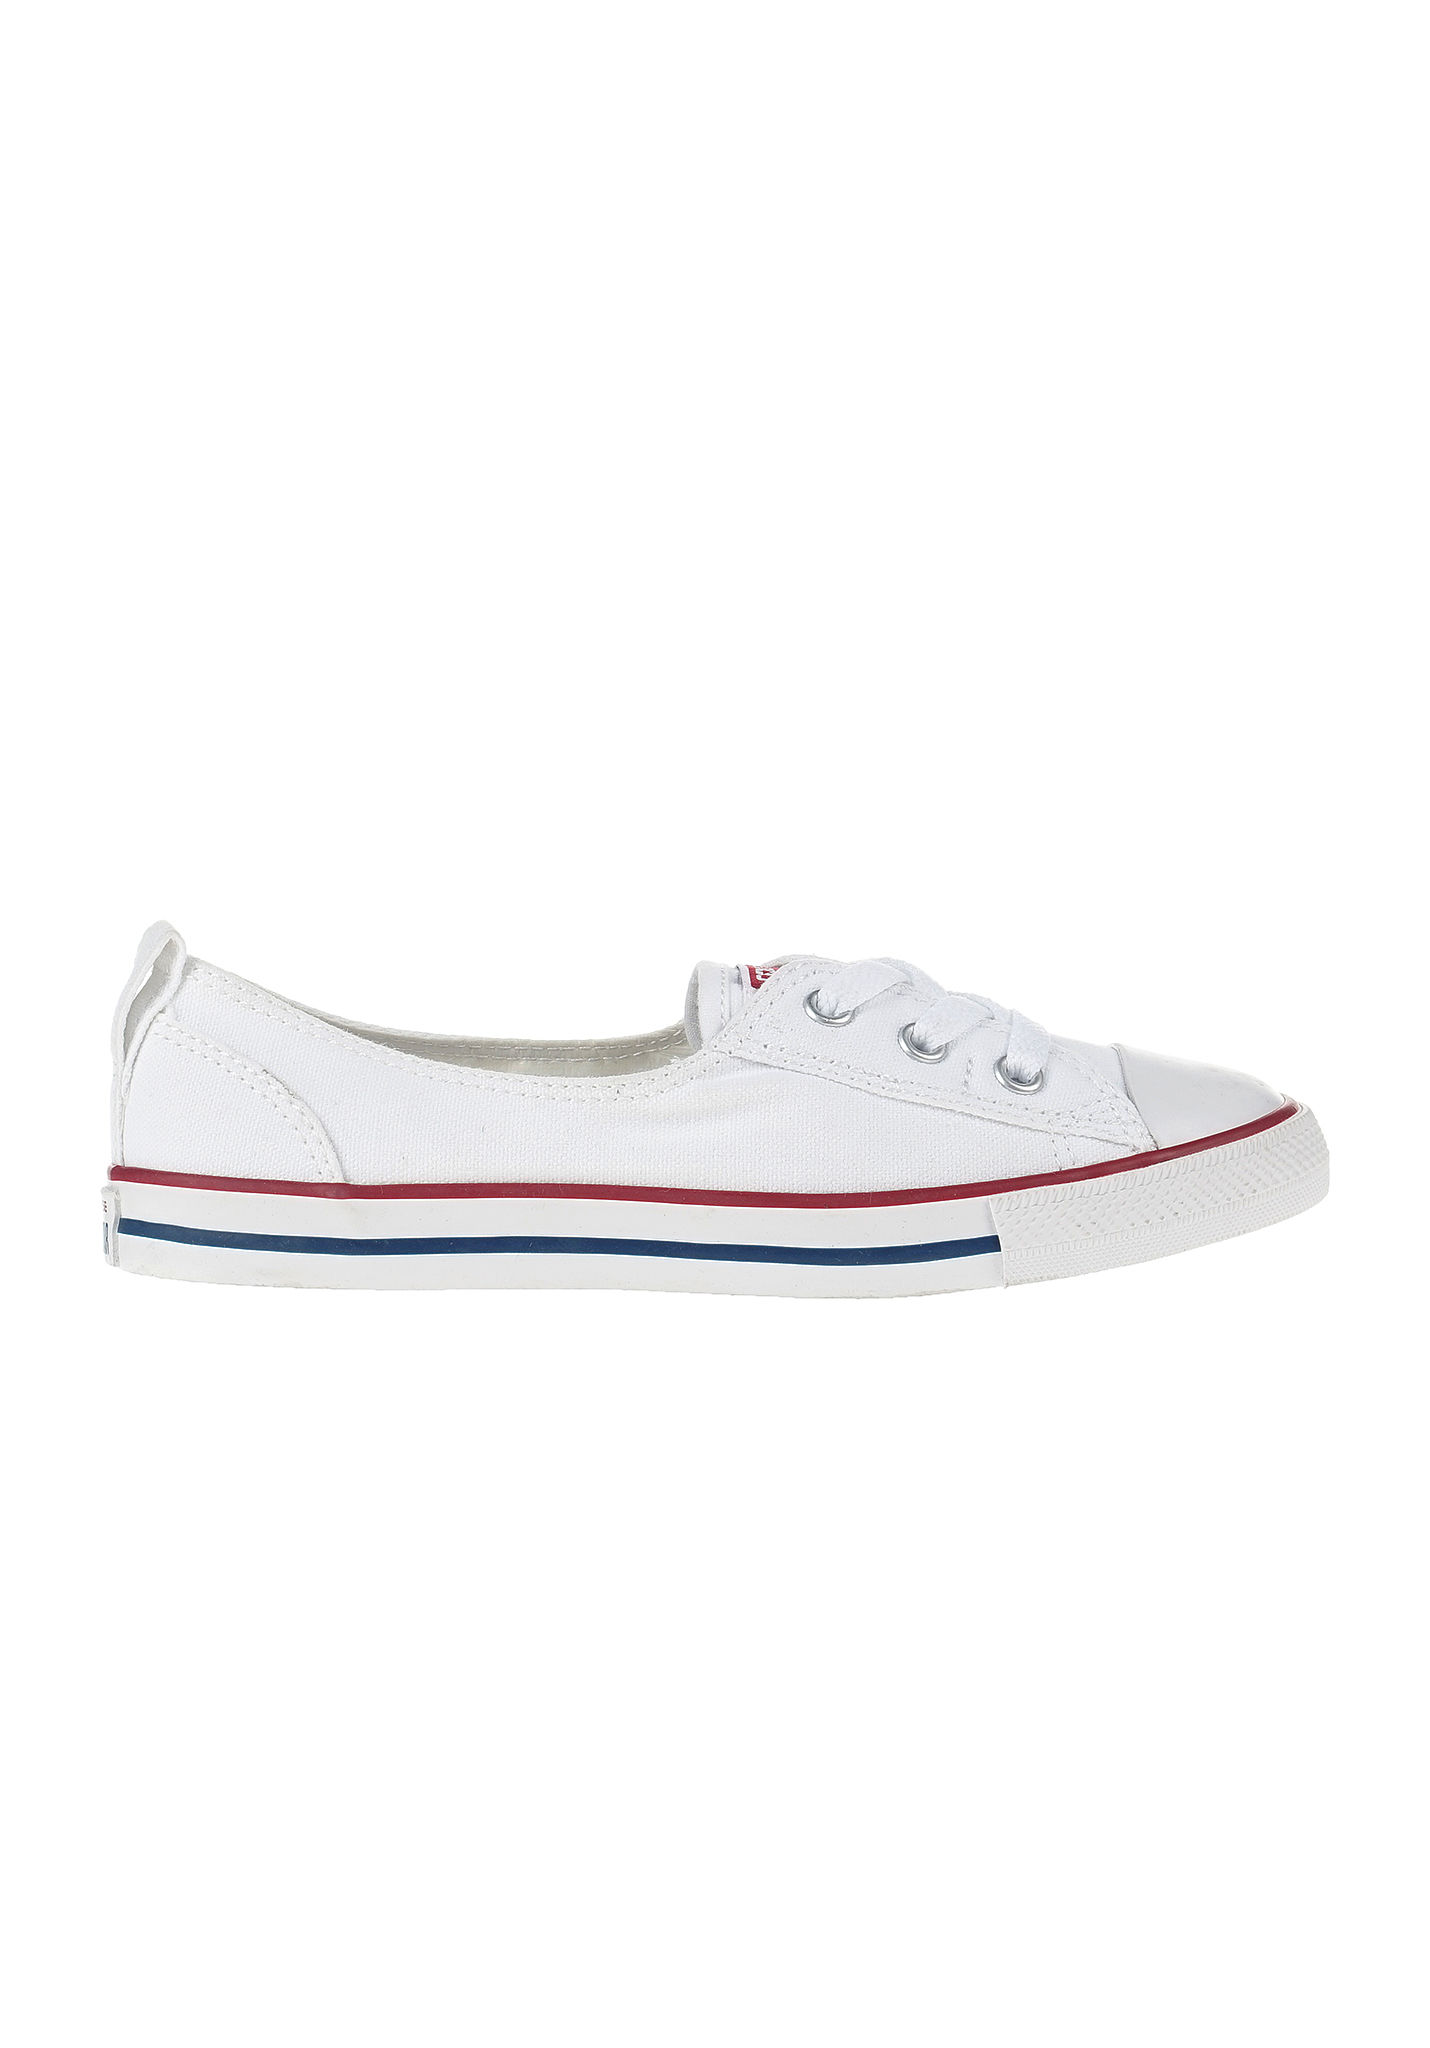 dcdb7b145860 Converse Chuck Taylor All Star Ballet Lace - Sneakers for Women - White -  Planet Sports